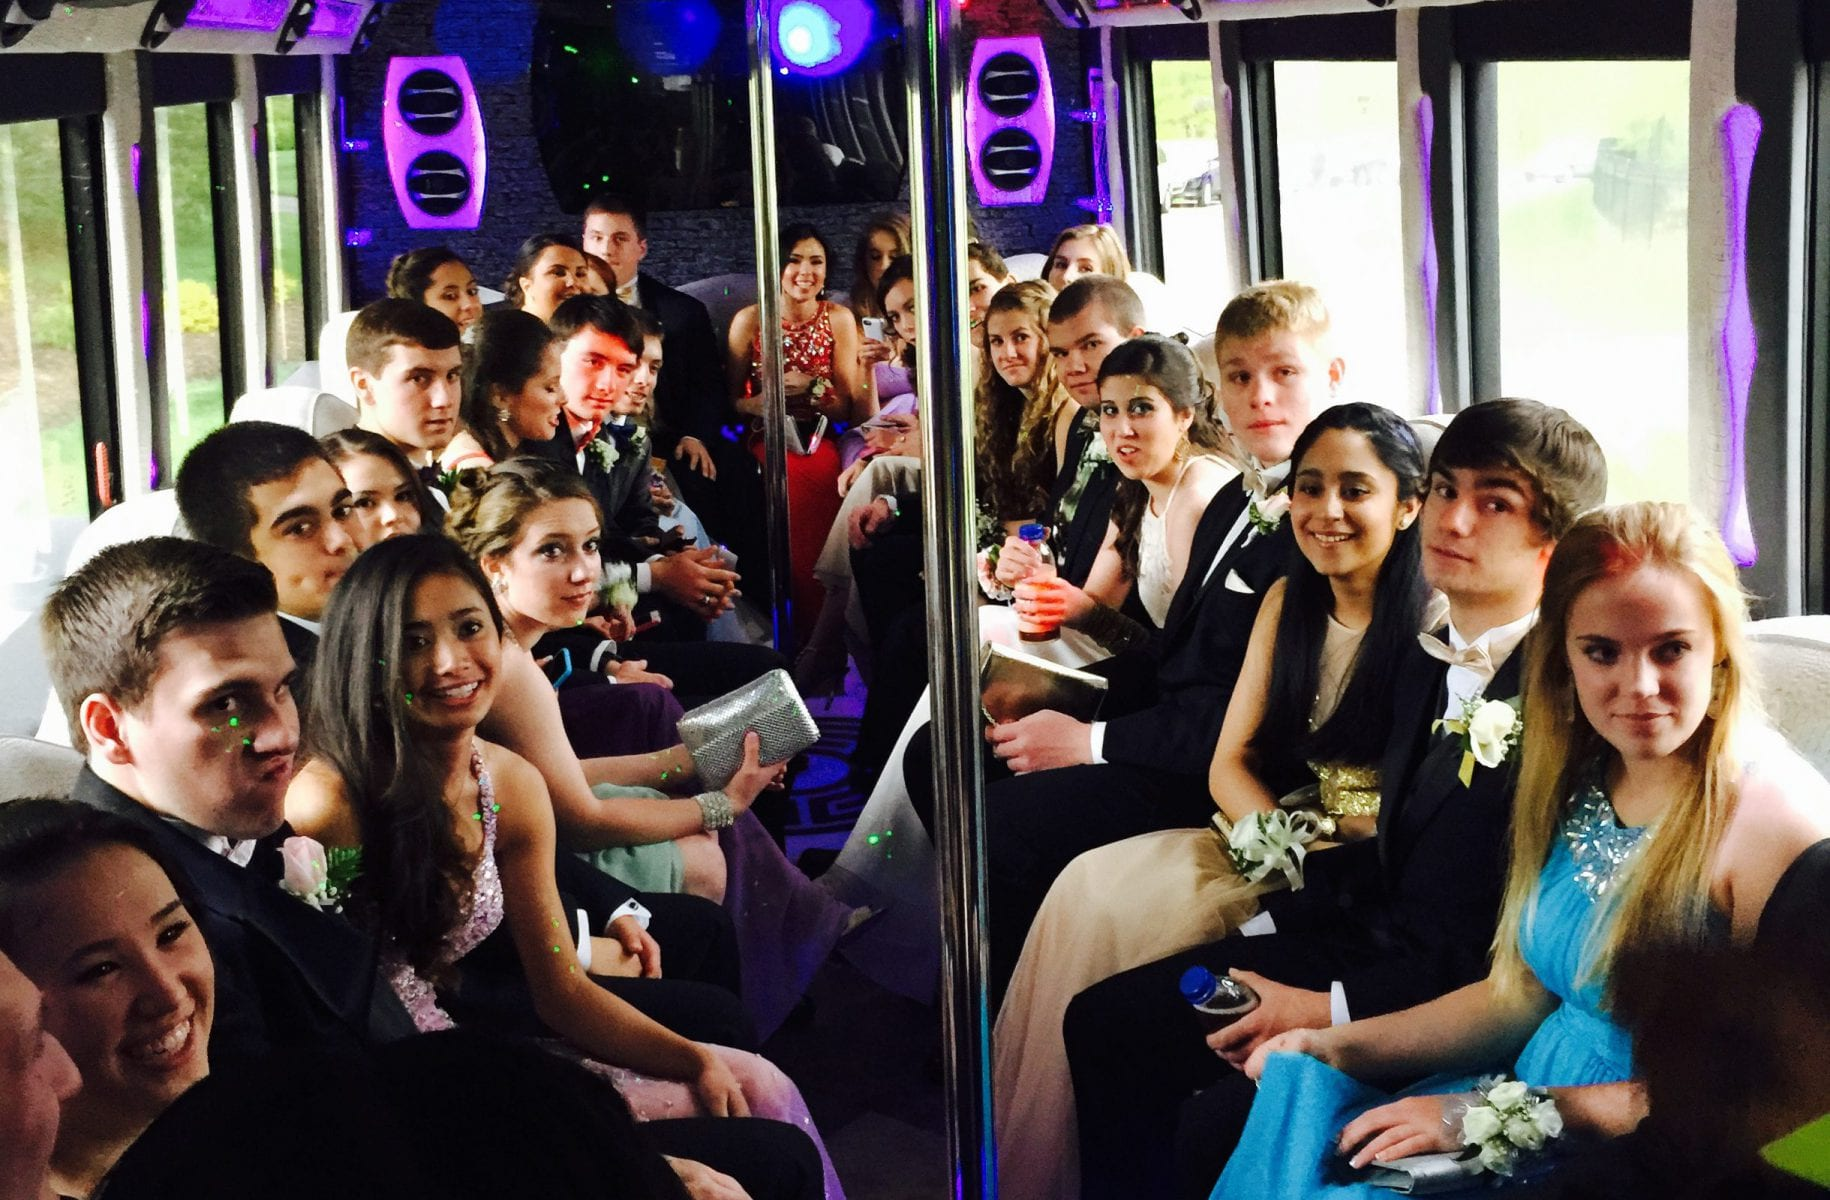 Graduation Limo Bus for Prom